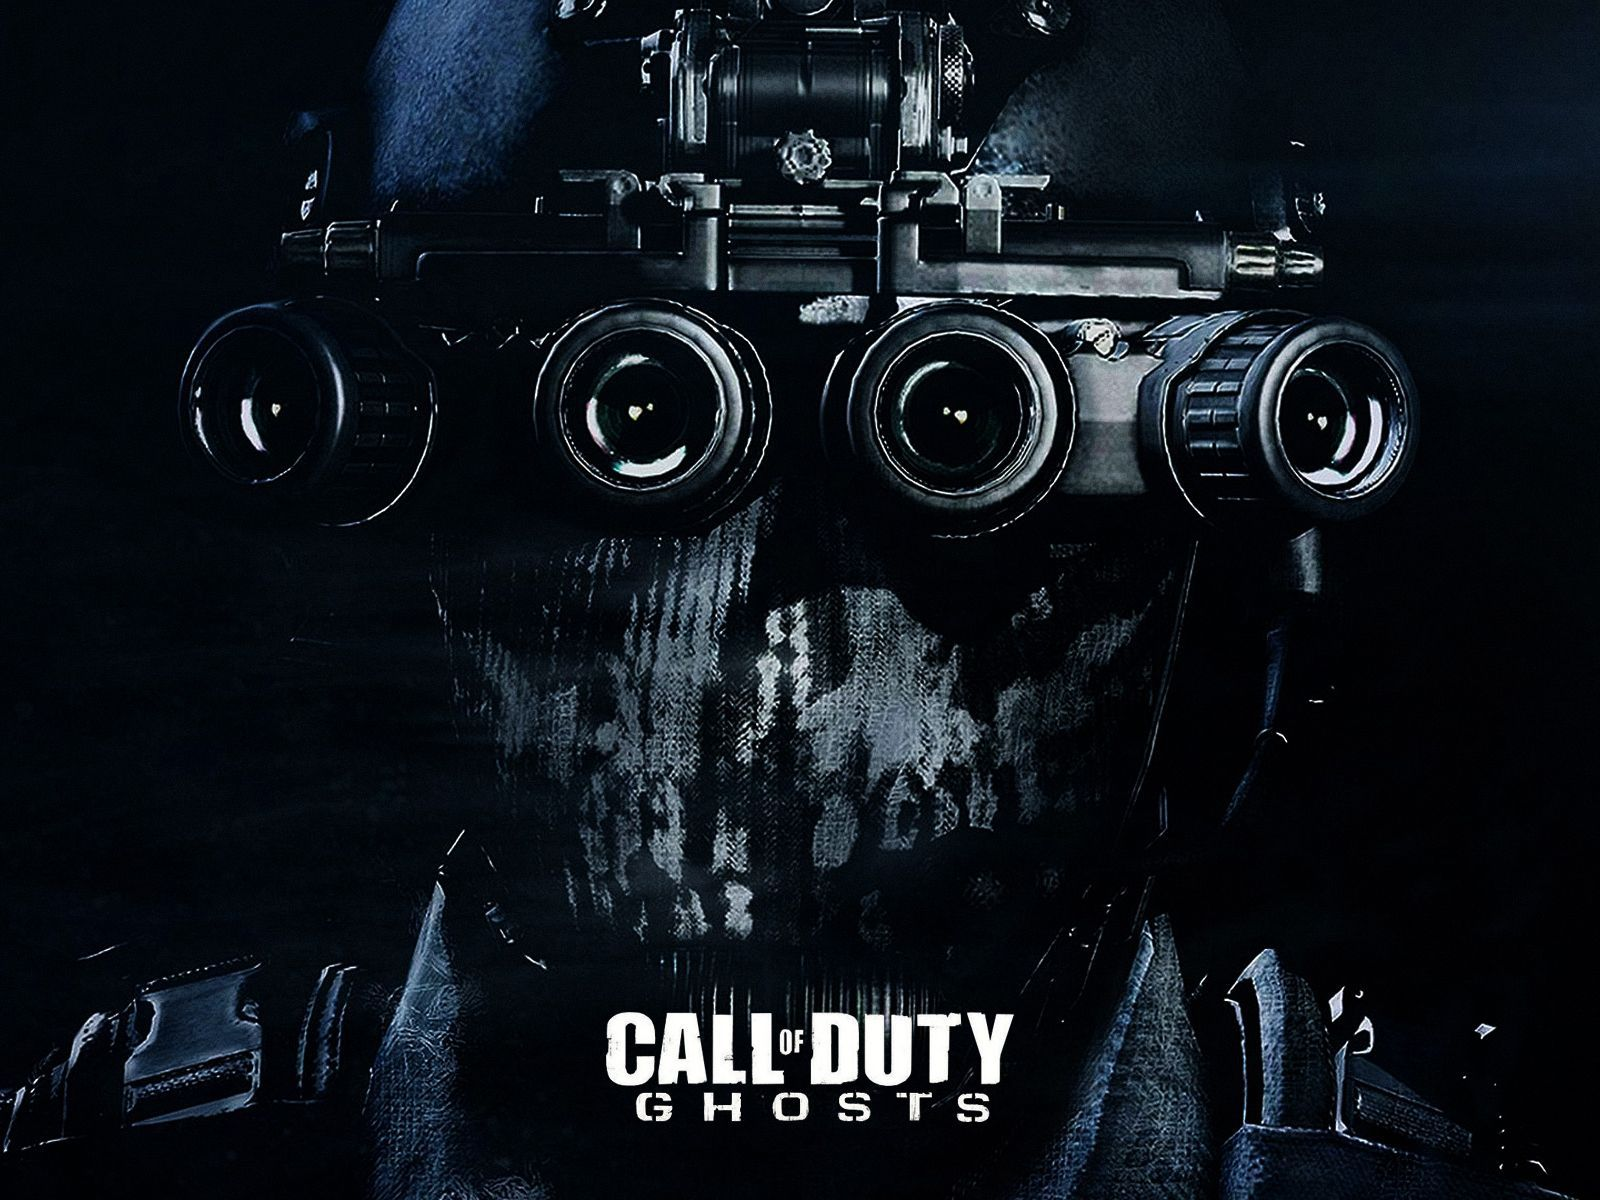 Call Of Duty Ghosts 2 Wallpaper 4k Call Of Duty Ghosts Call Of Duty Hd Wallpaper 4k